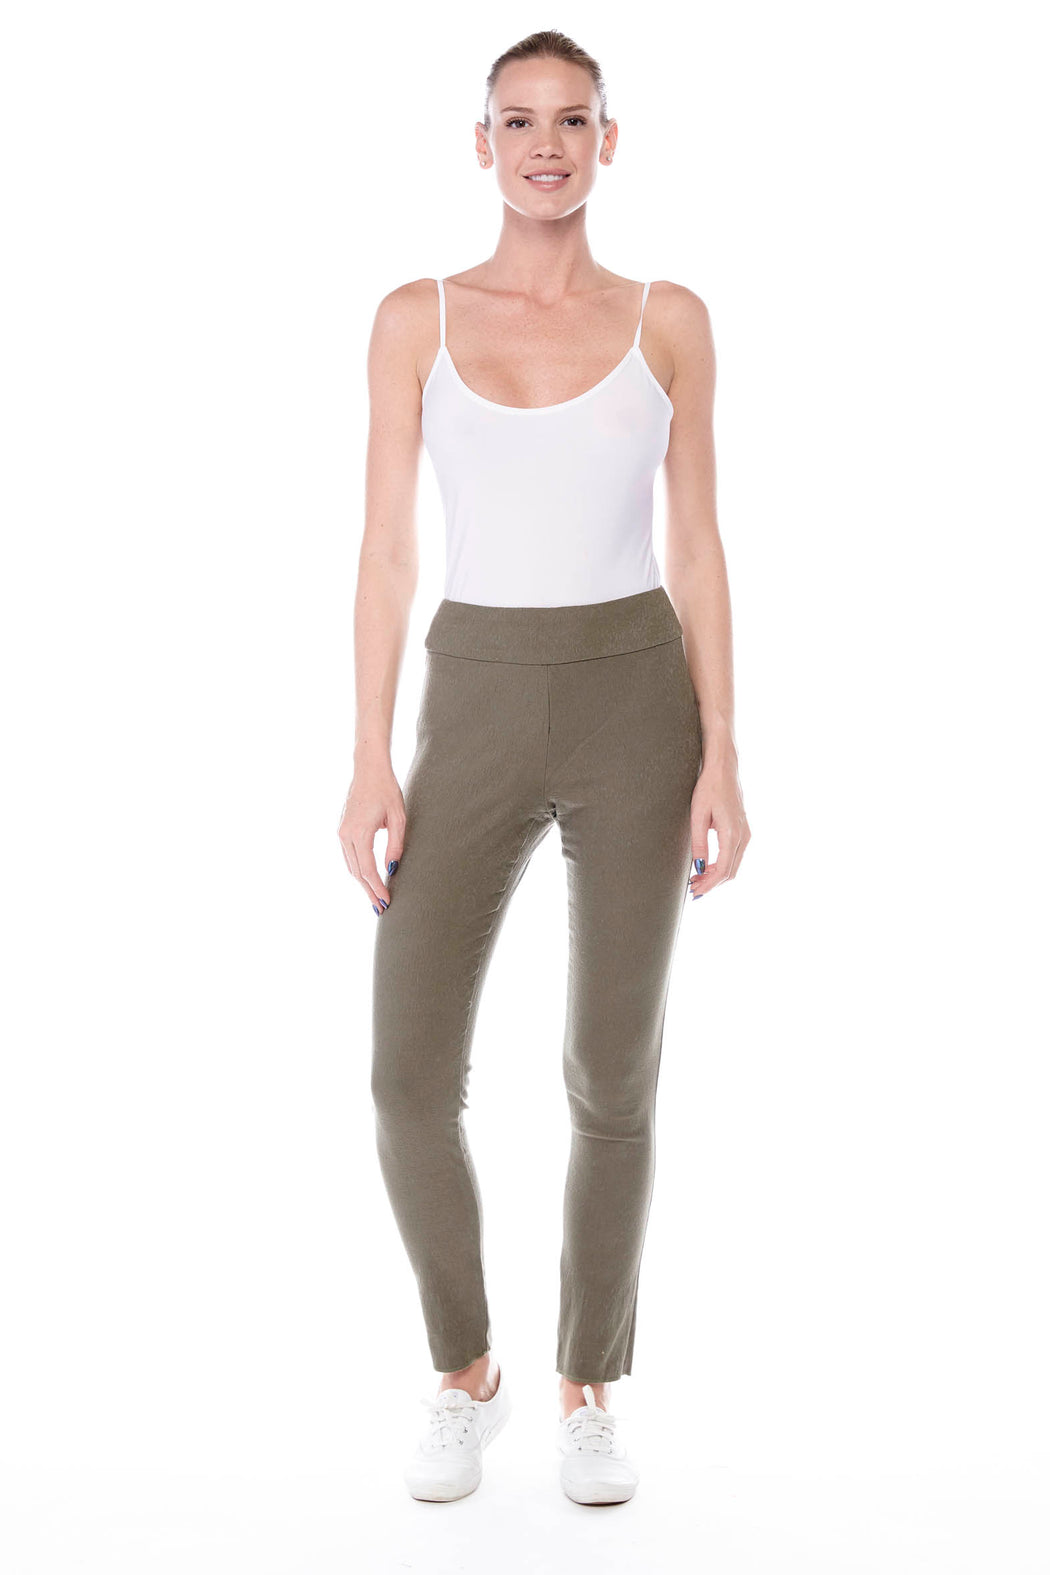 Jacquard Pants in Olive - Atelier5